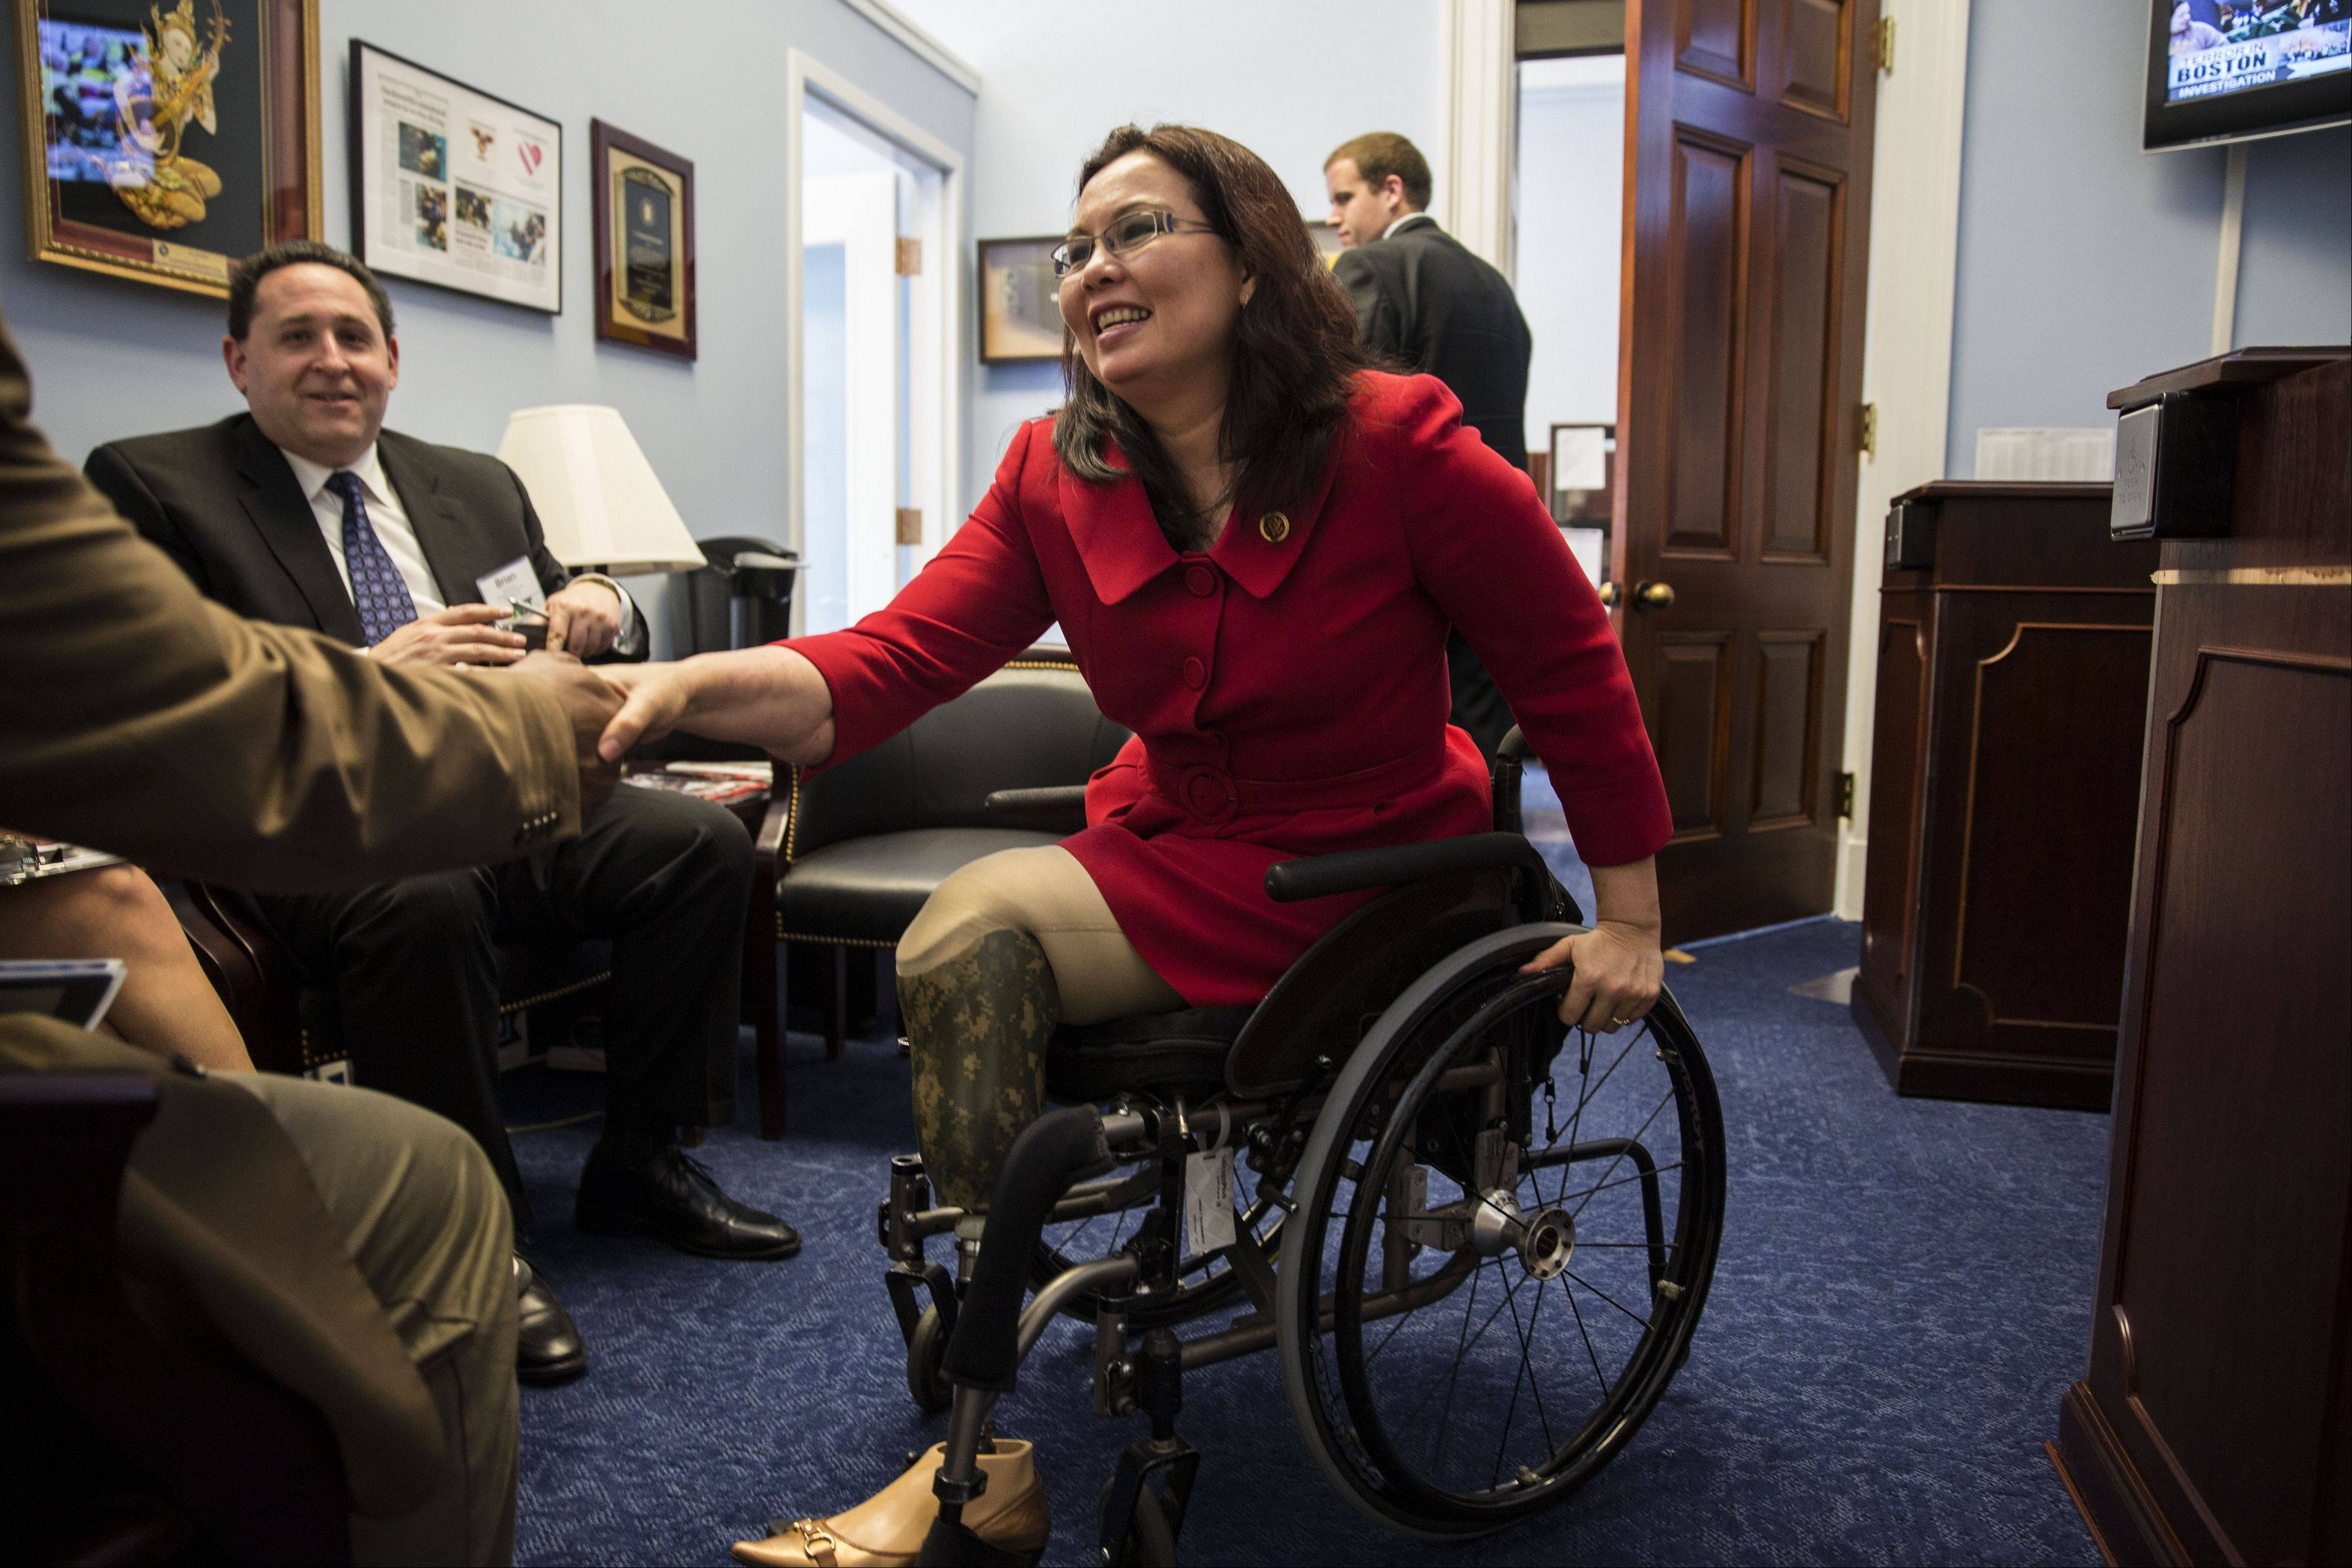 Democratic U.S. Rep. Tammy Duckworth of Hoffman Estates meets with constituents in her Cannon House office in Washington, D.C.